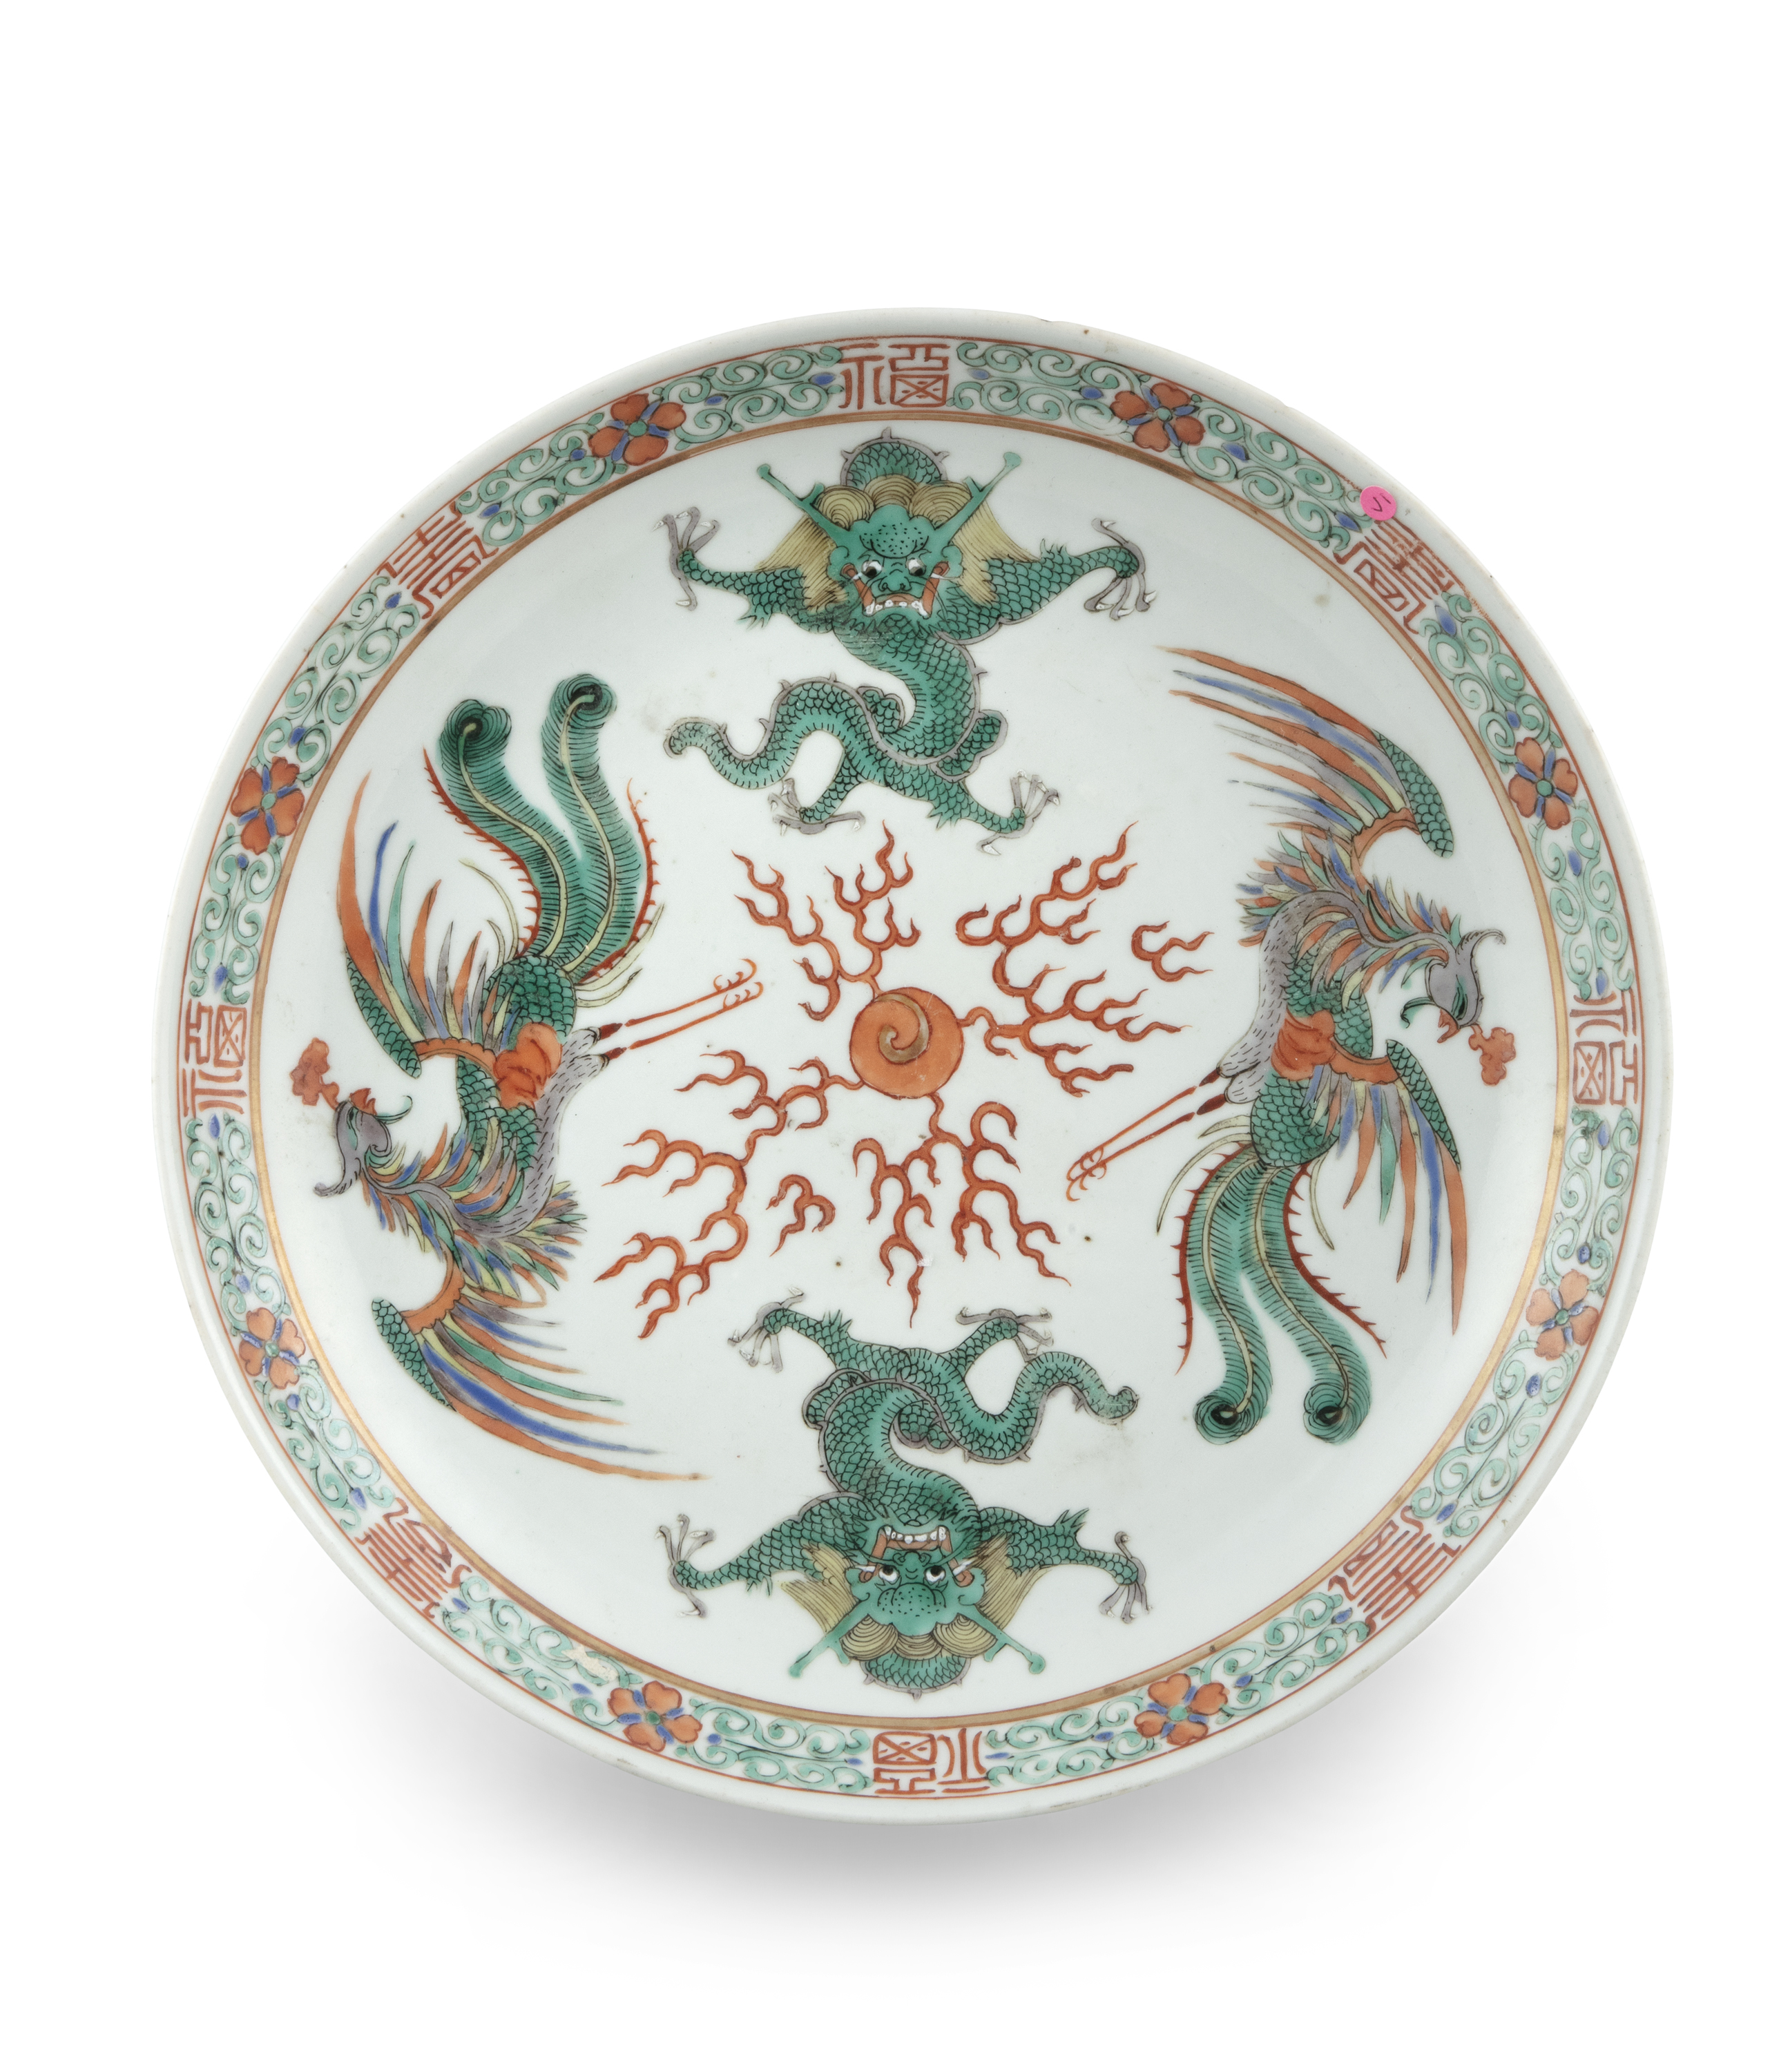 A FAMILLE VERTE 'DRAGON AND PHOENIX' PORCELAIN DISH China, late Qing Dynasty, 19th century The